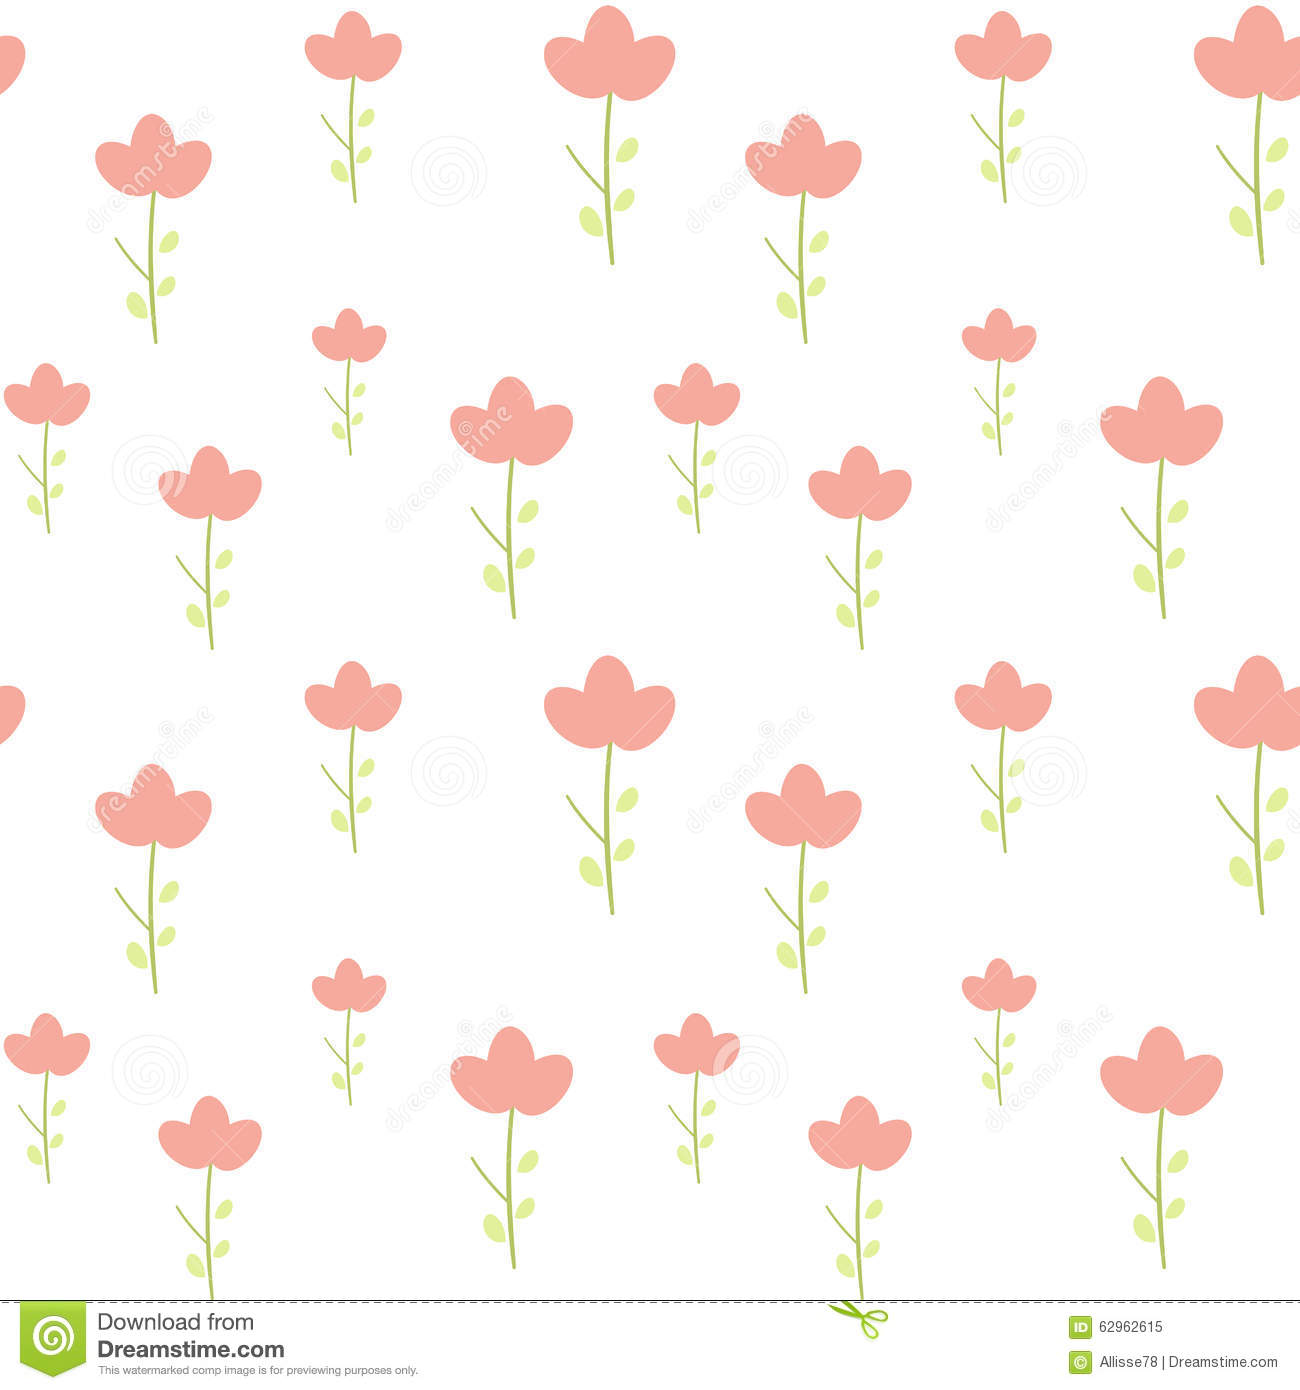 Simple flower pattern background - photo#12